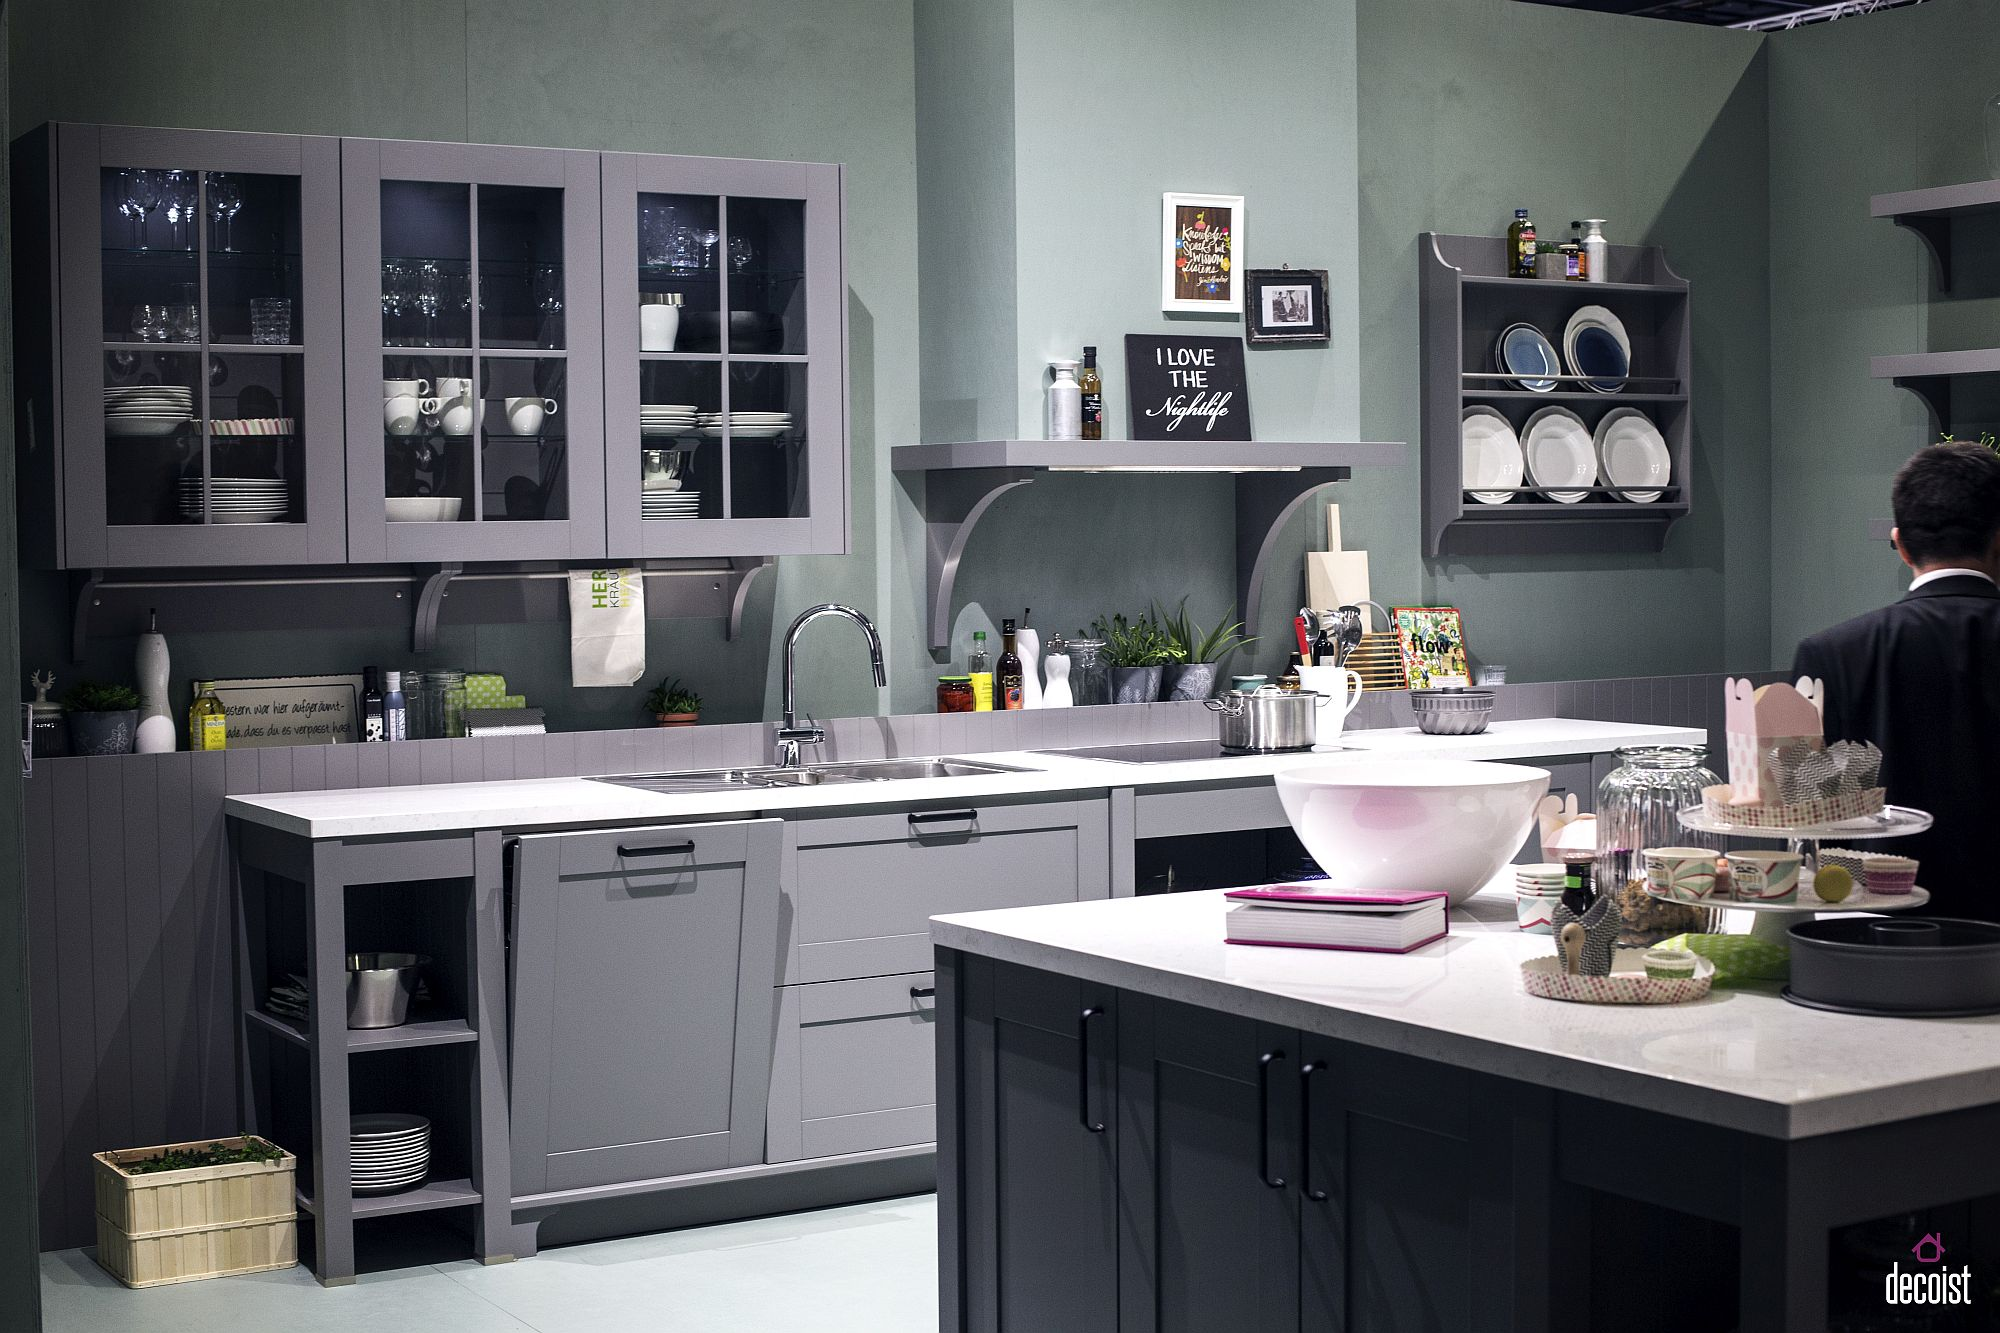 Light and dark shades of gray combined inside the modern kitchen